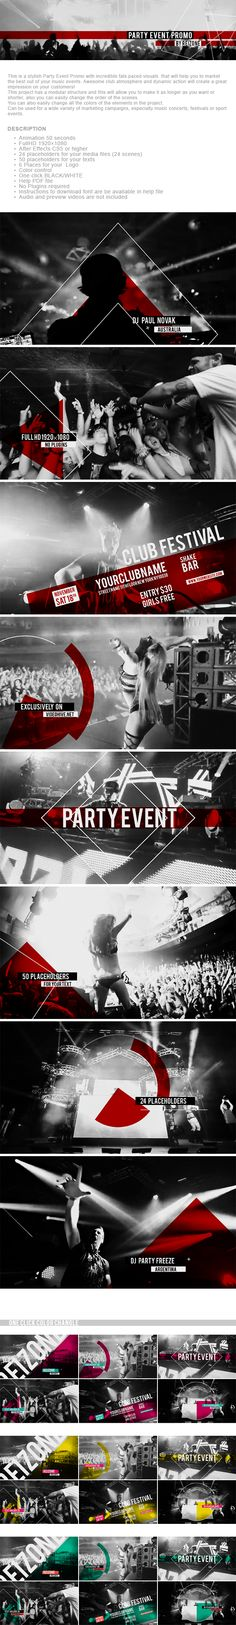 After Effects Project Files - Party Event Promo | VideoHive